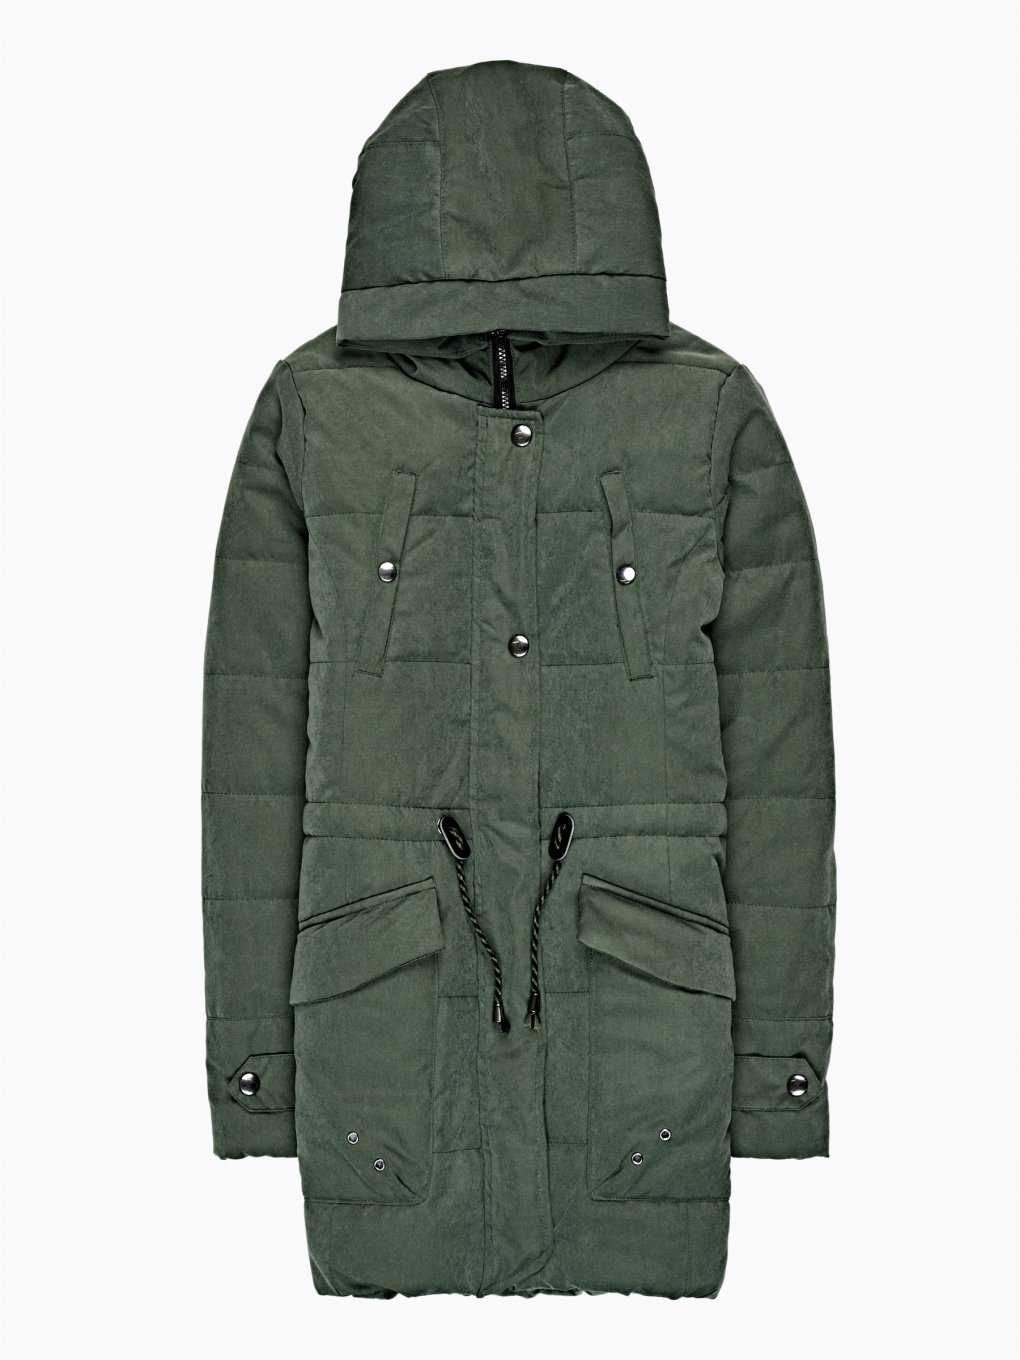 Pile lined padded jacket